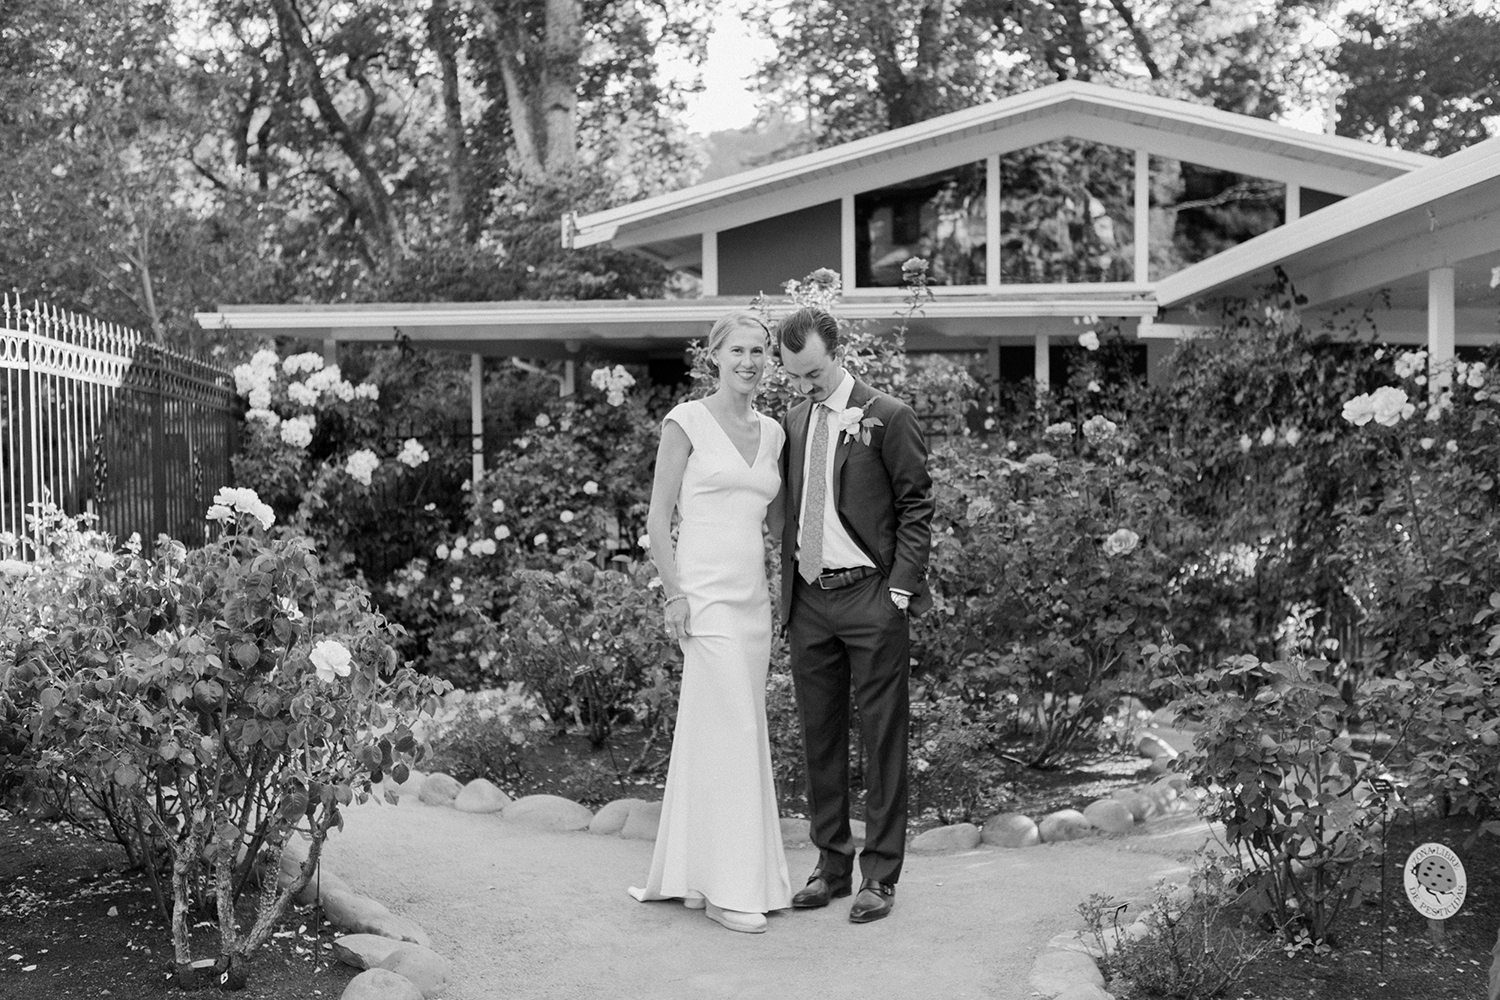 Chris and Claire's wedding portraits at Marin Art and Garden Center in Marin California.